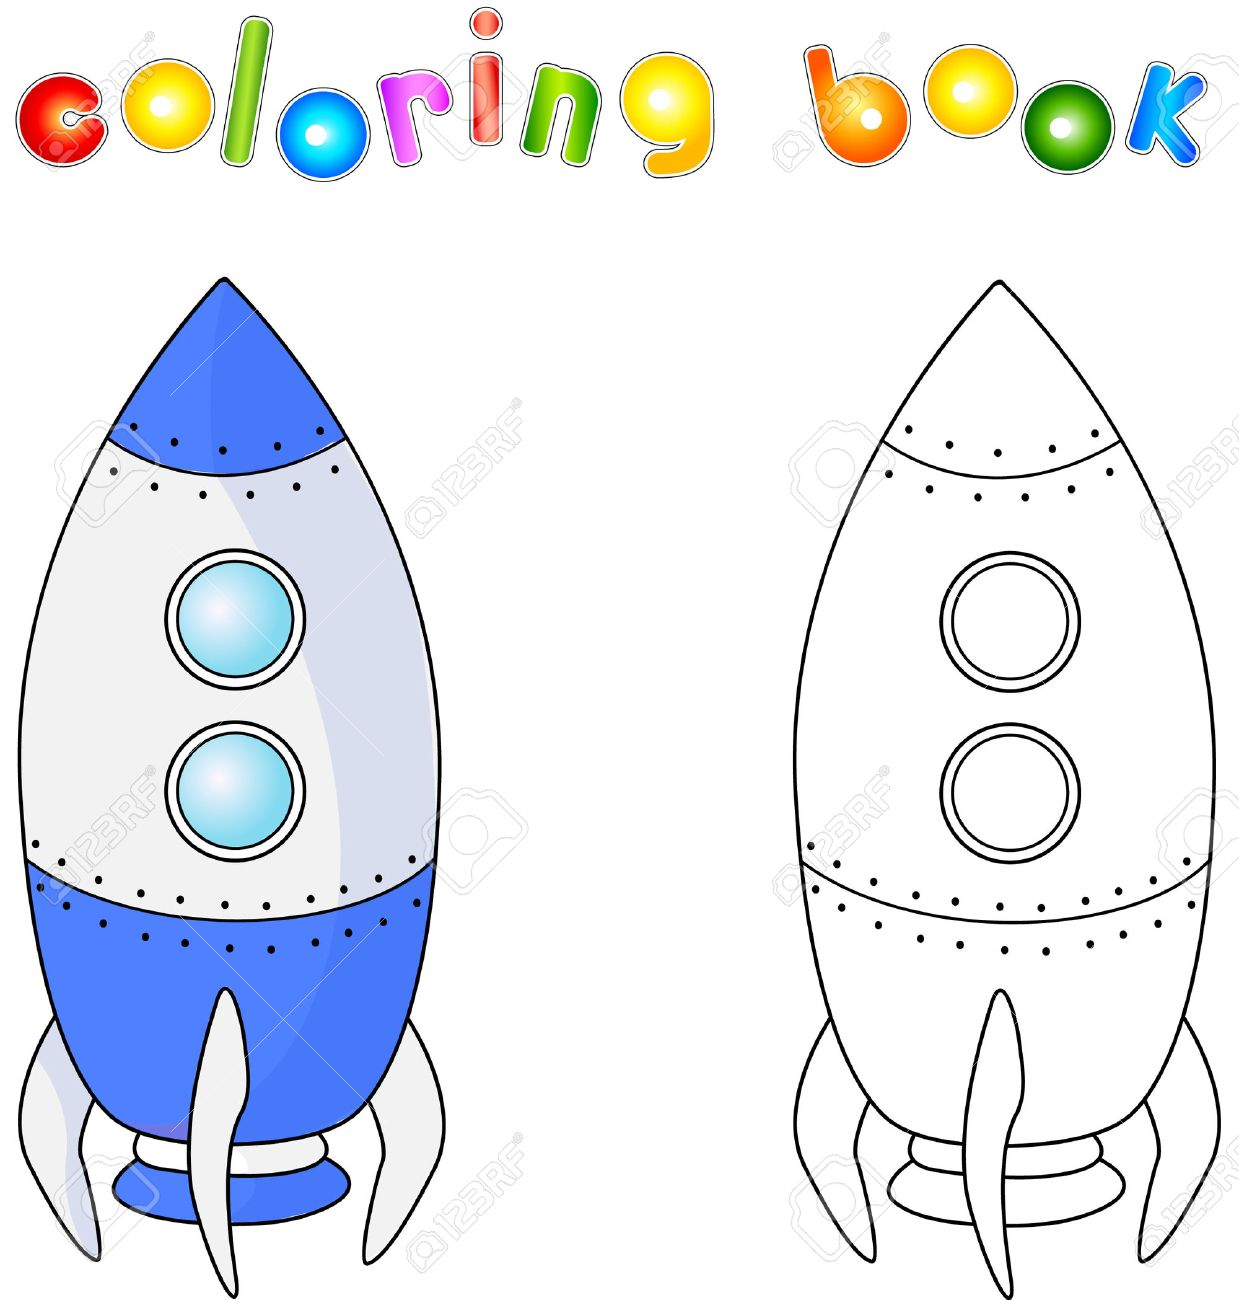 spacecraft or aerospace vehicle coloring book for children about